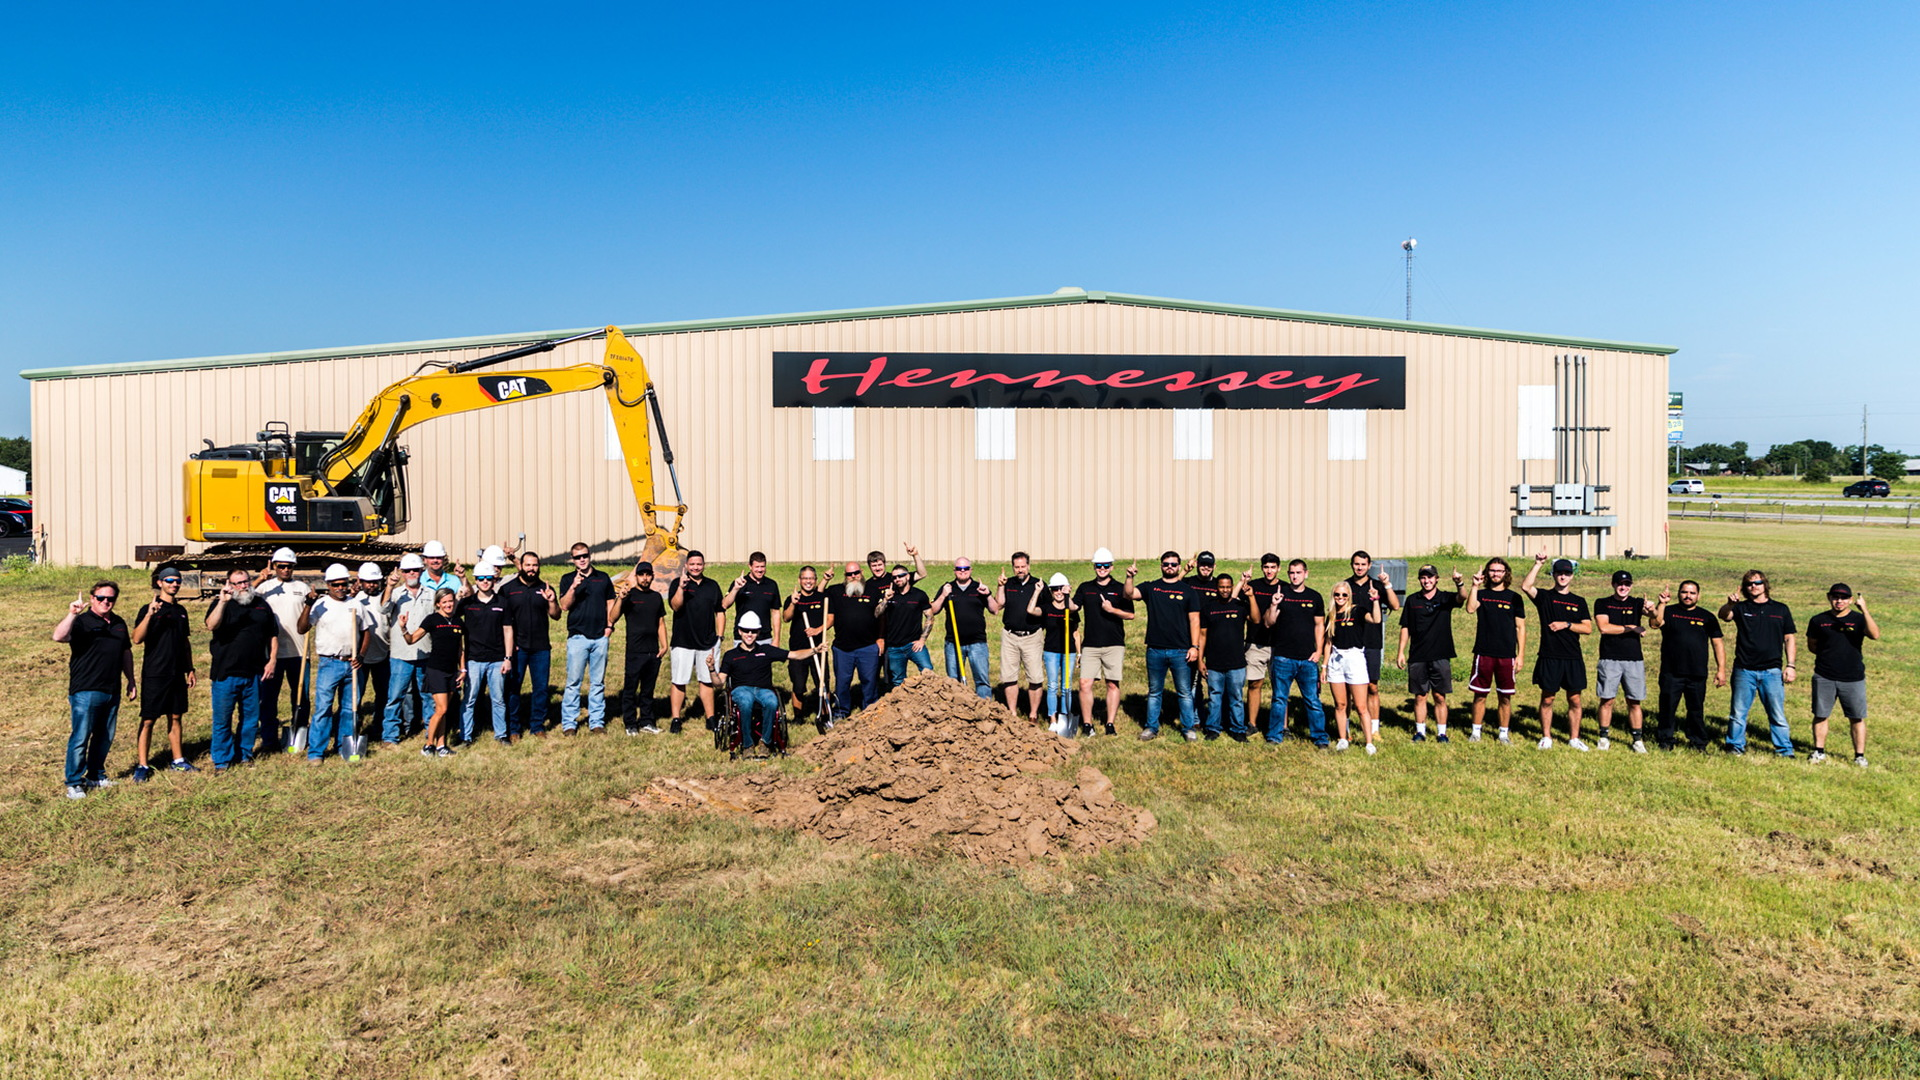 Groundbreaking for expansion of HennesseyPerformance Engineering factory in Sealy, Texas